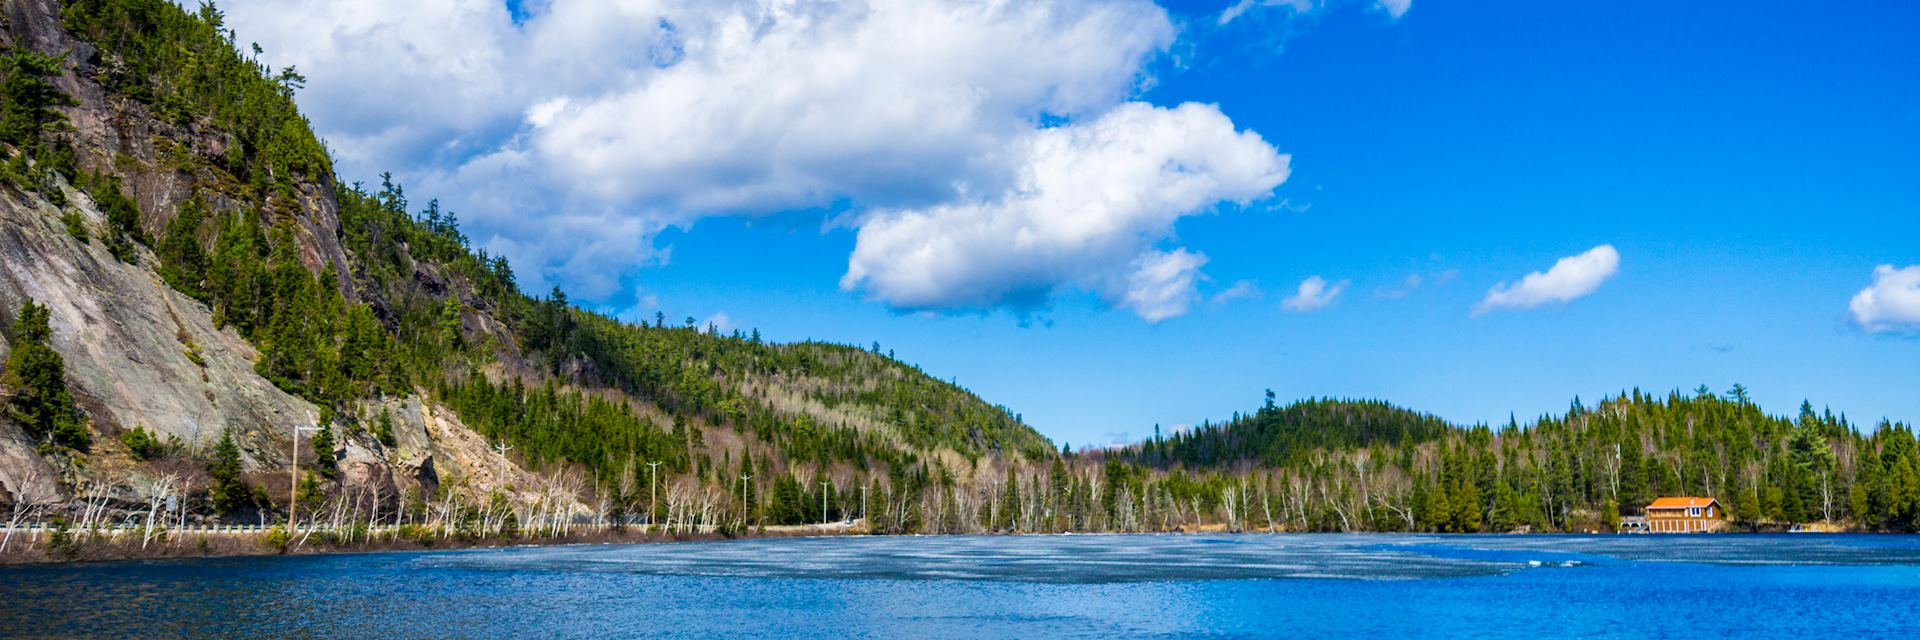 Lake in the Laurentian Mountains